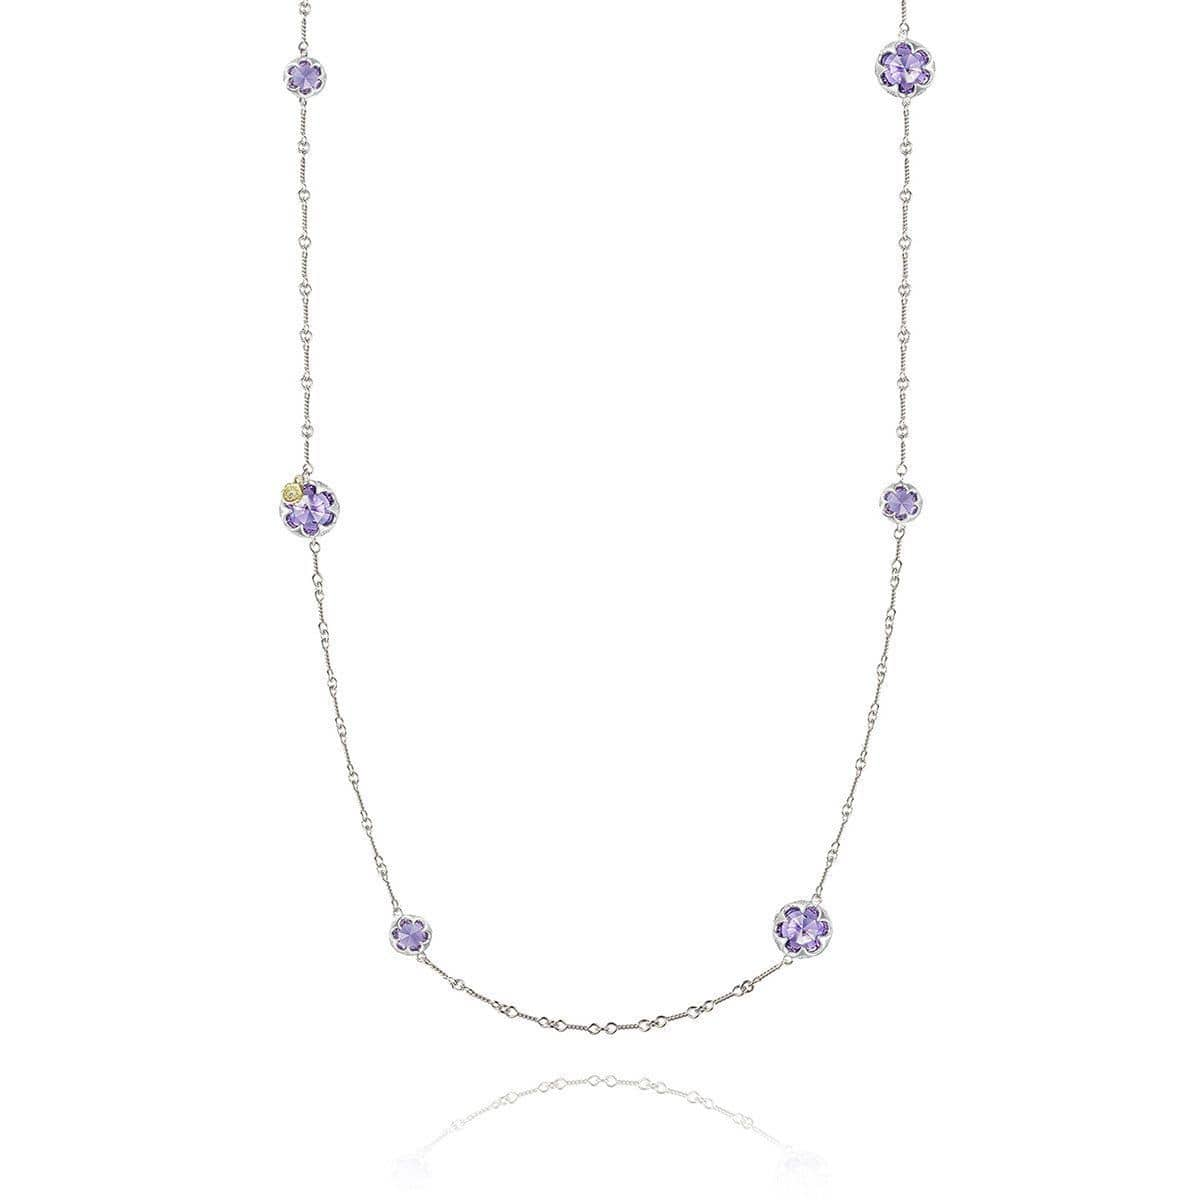 Multi-Gem Station Necklace with Amethyst - SN20301-Tacori-Renee Taylor Gallery